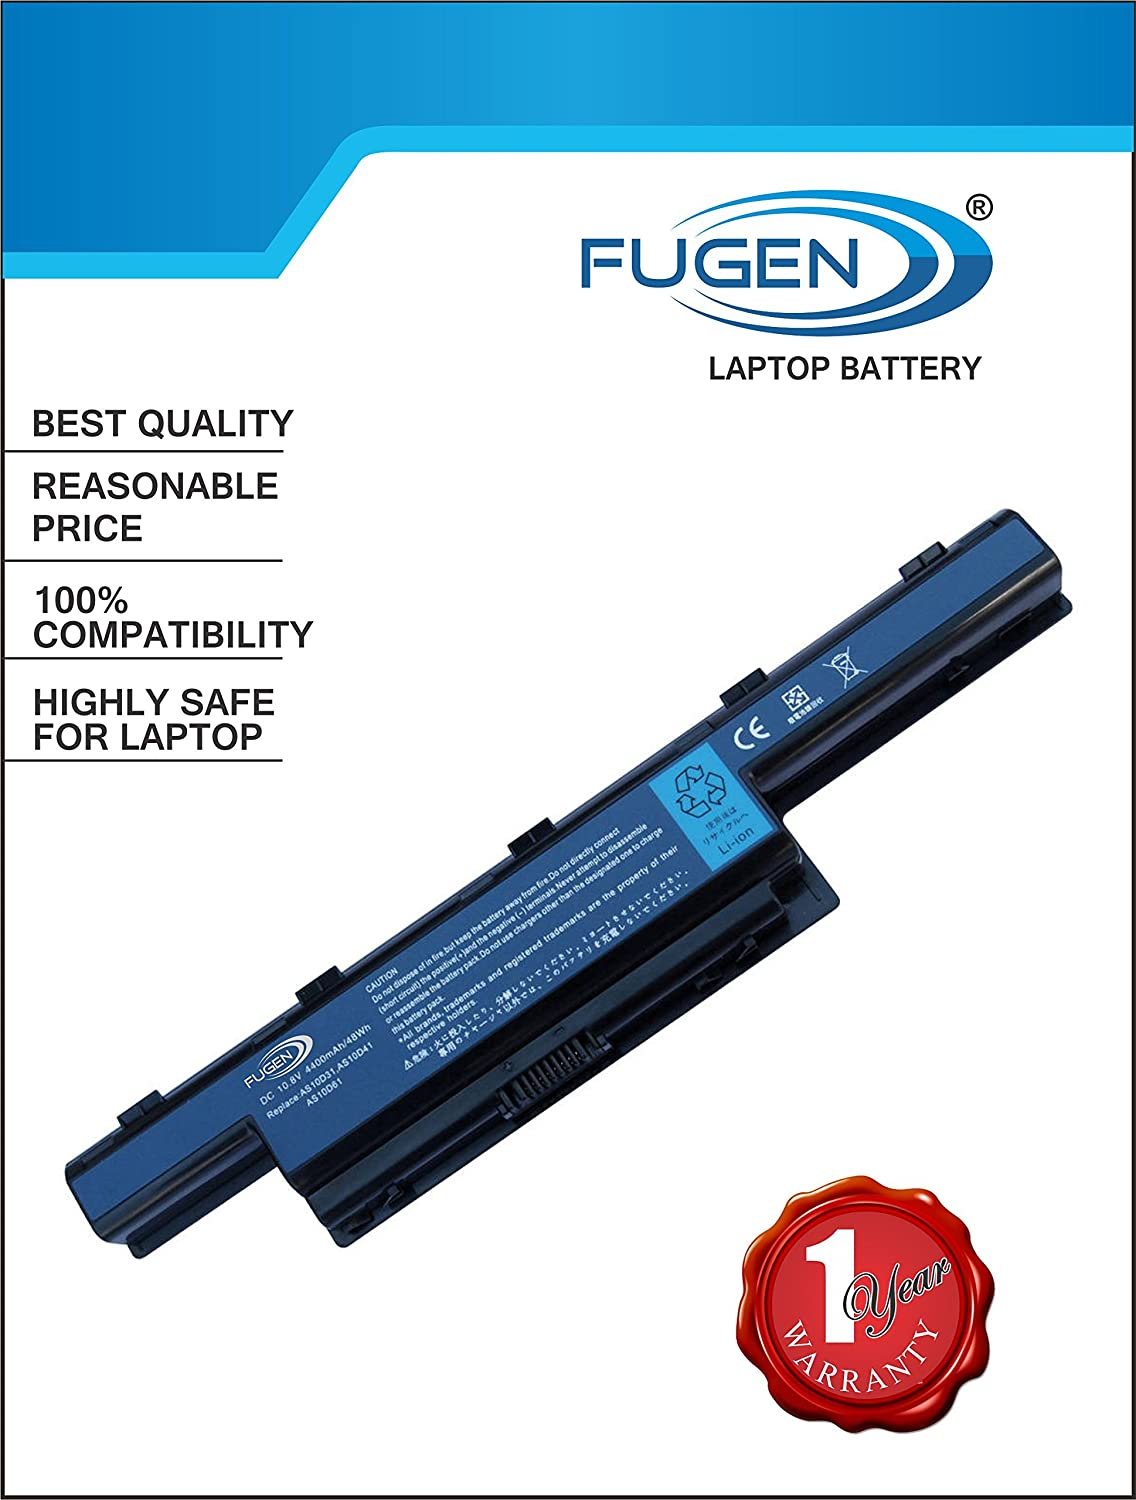 Fugen 6 Cell 4000 Mah Laptop Battery For Acer Aspire Series Buy Adaptor Charger 4739 4738 4741 4750 4736 4752 4740 Online At Low Price In India